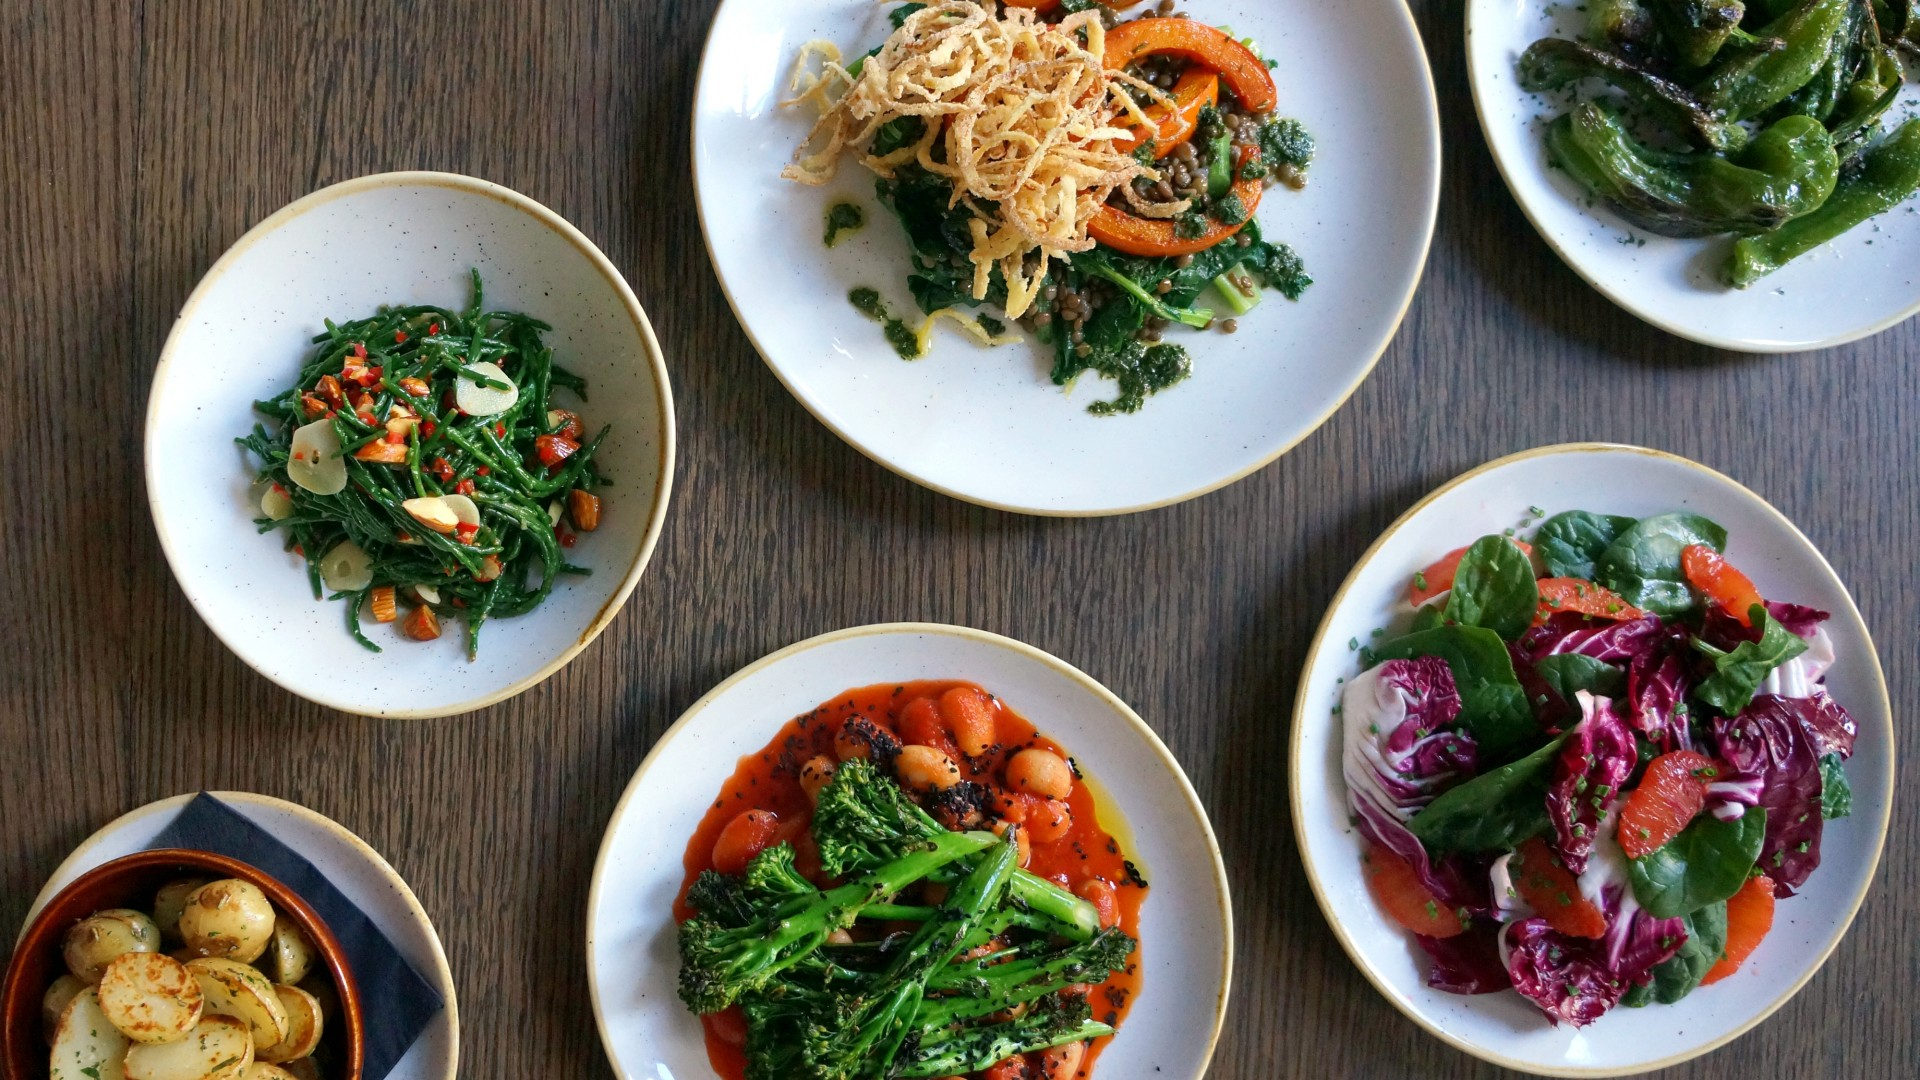 A selection of vegan dishes at Arthur Hooper's in Borough Market